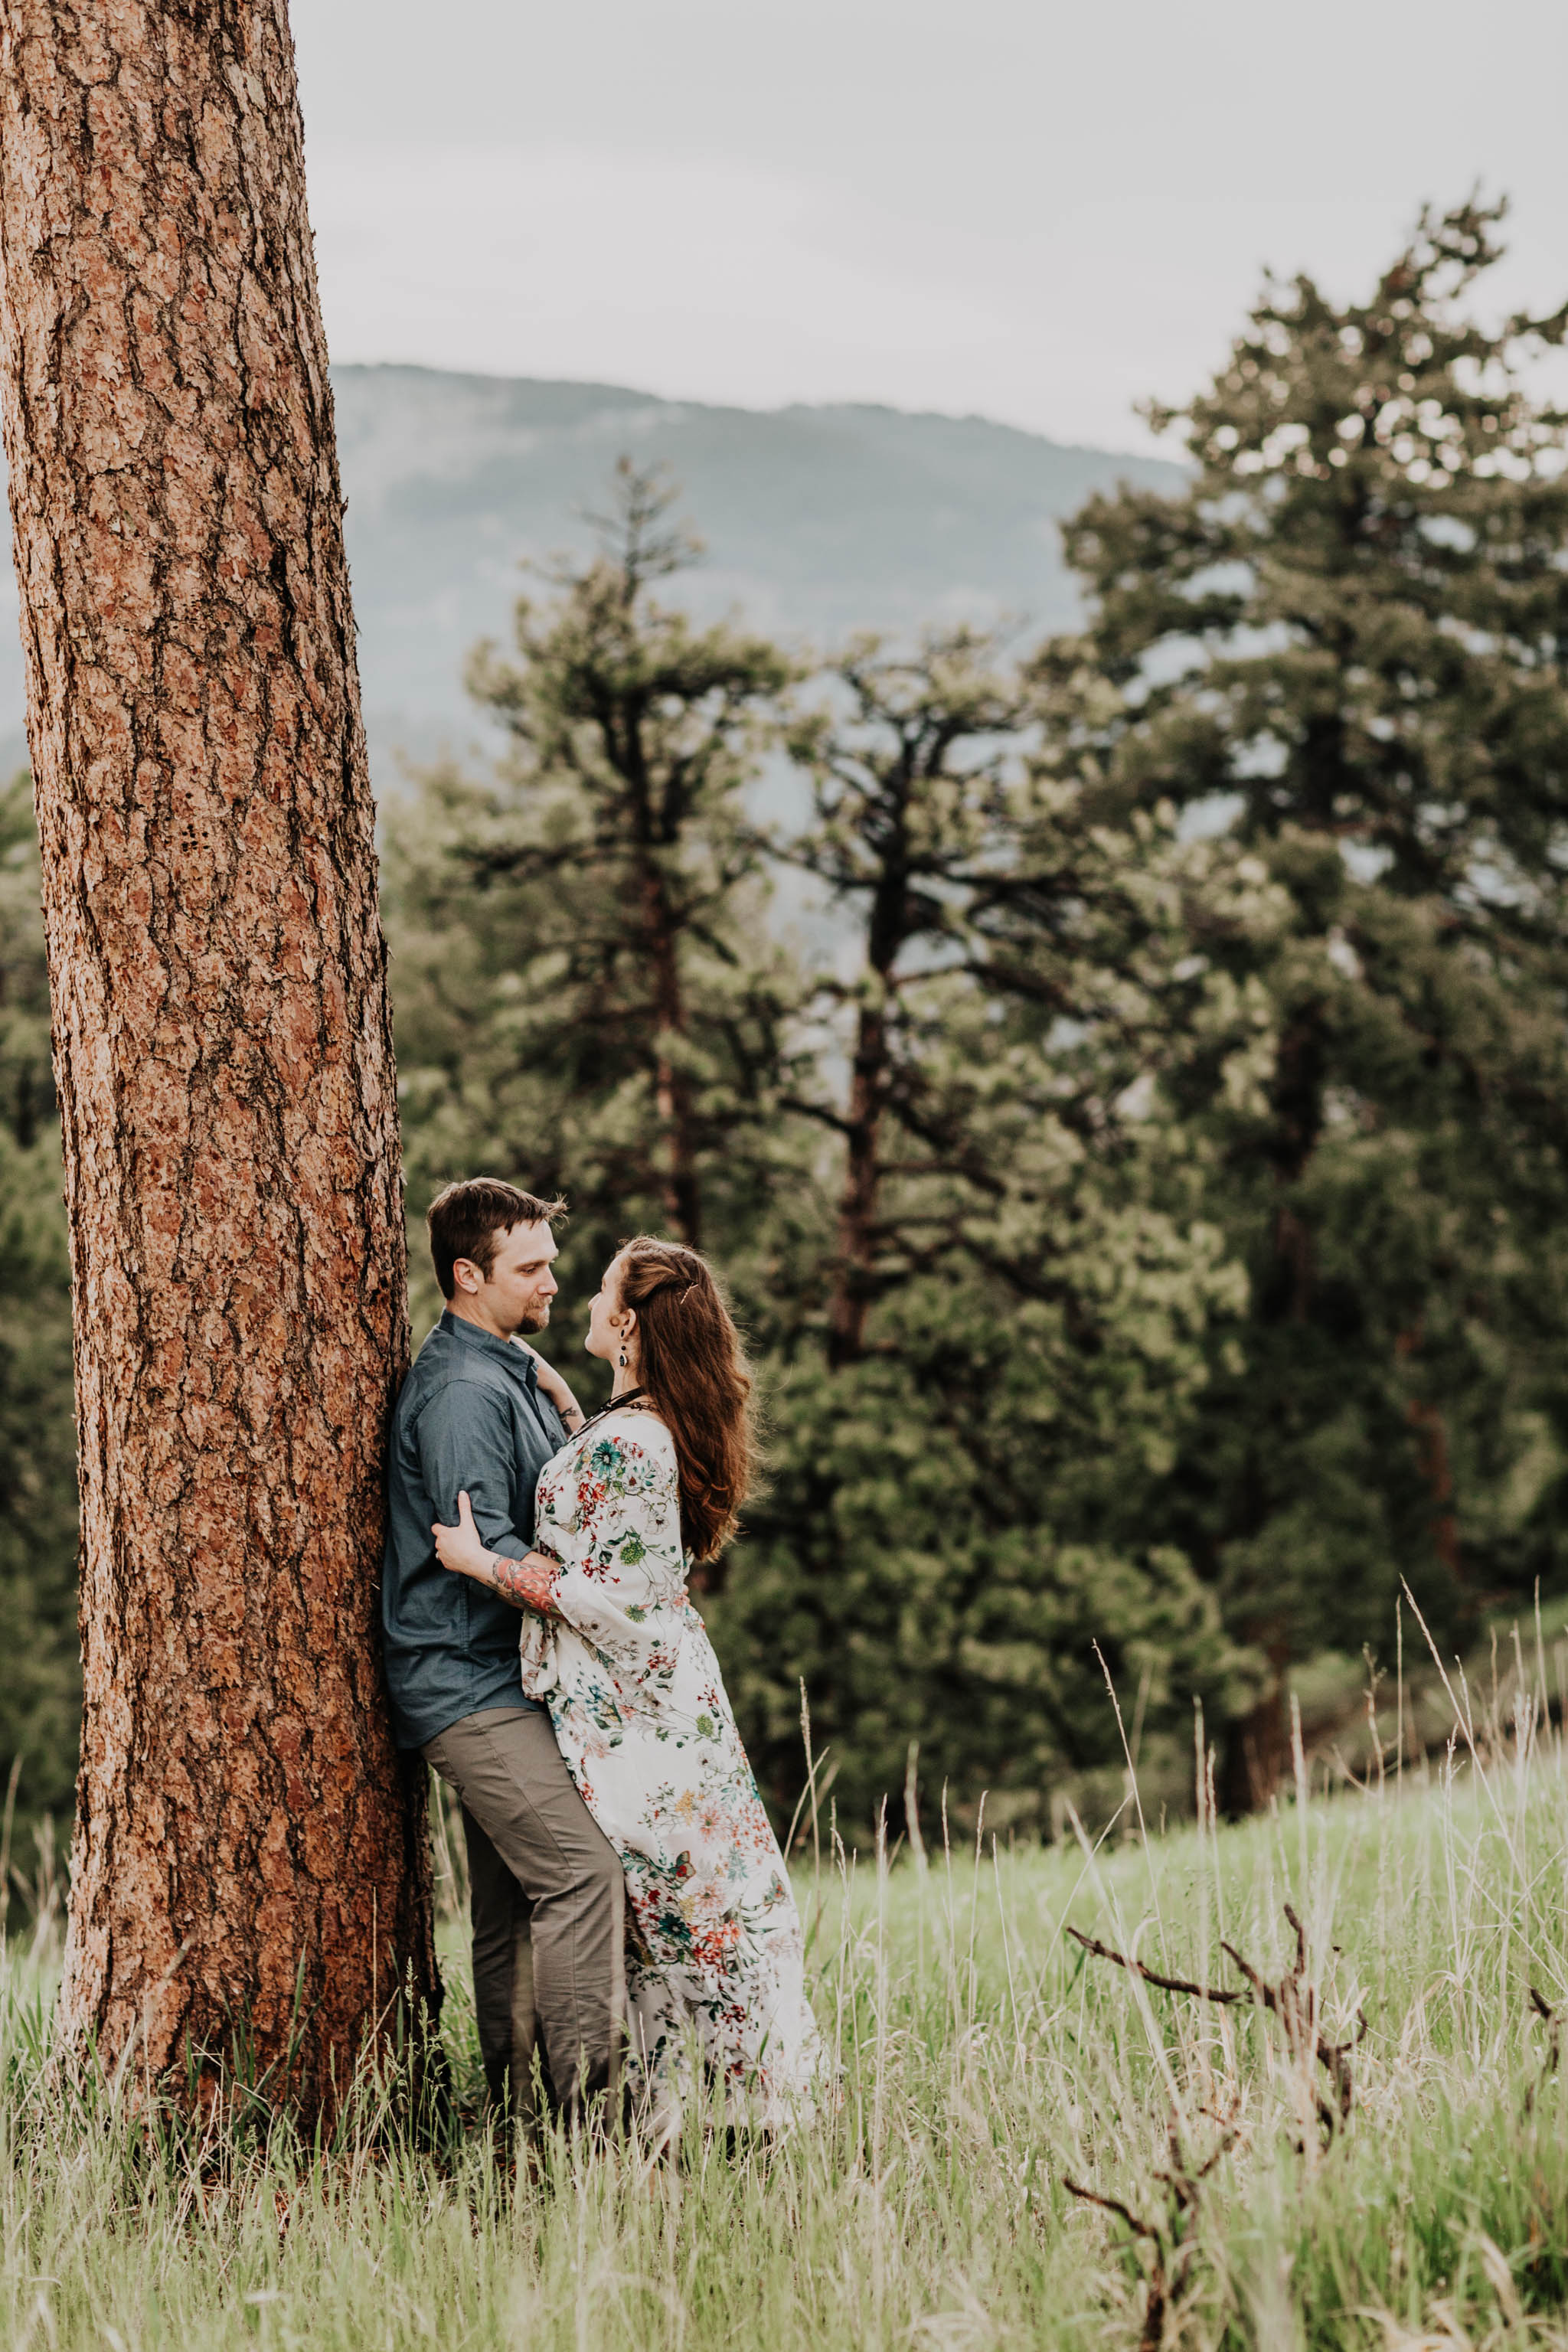 Sheena_Shahangian_Photography_Engagement_Photo_Shoot_Shelby_and_Andrew_Boulder_Colorado-131.jpg